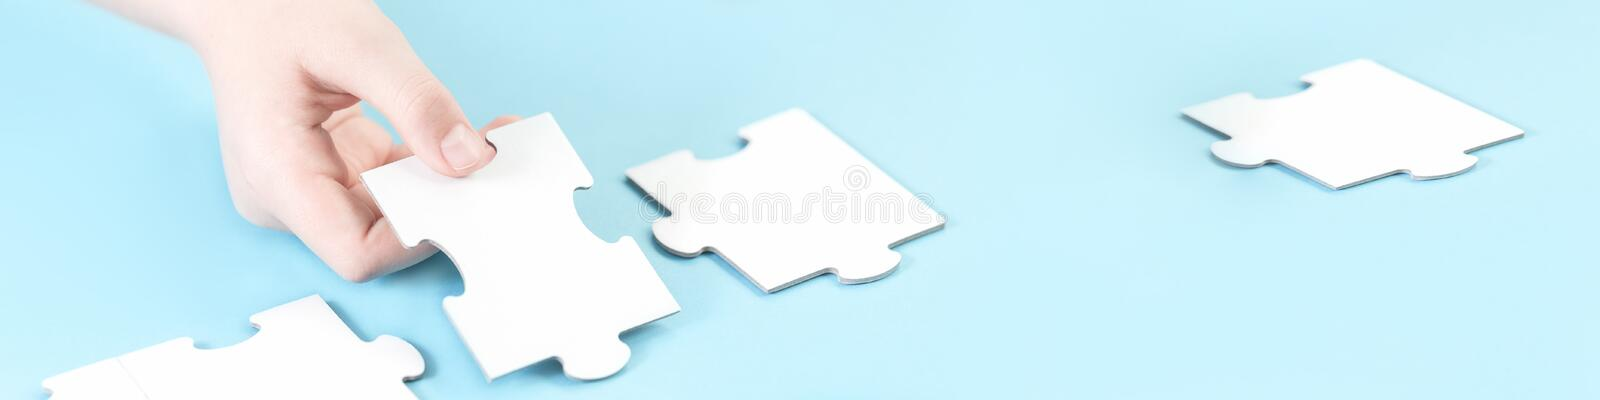 Jigsaw puzzle piece in a hand stock photo